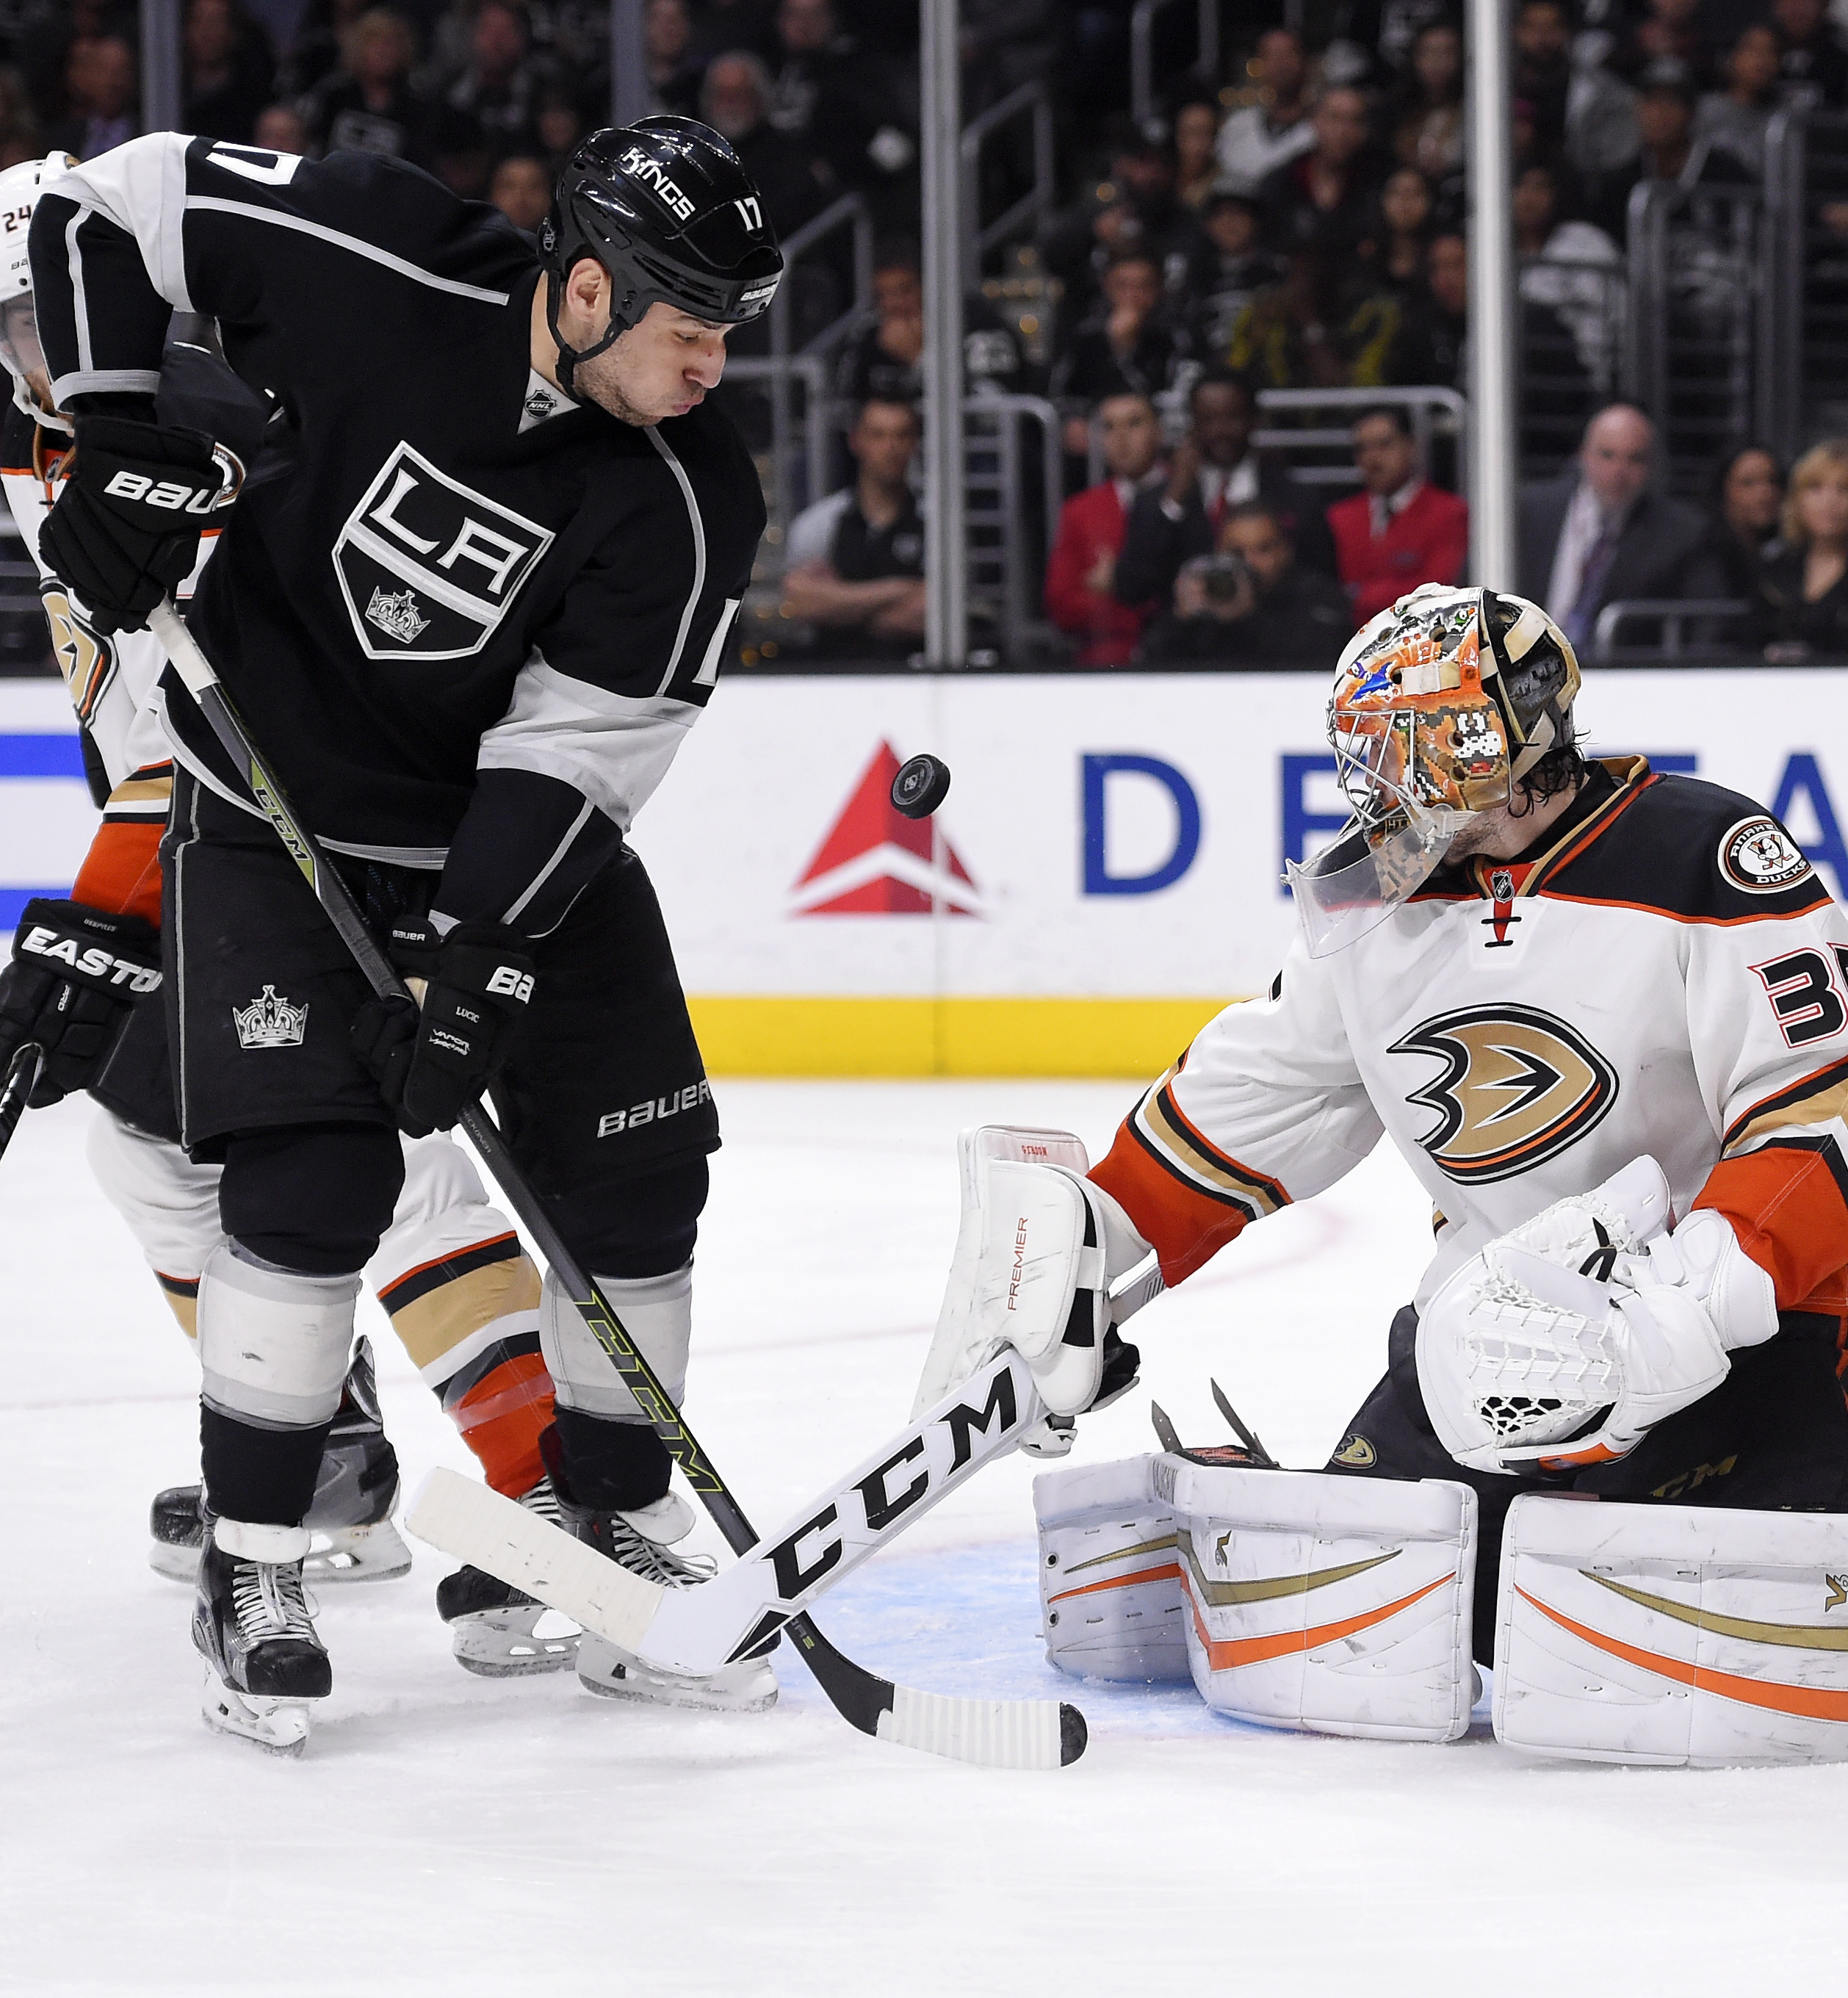 Los Angeles Kings left wing Milan Lucic, left, tries to get a shot in on Anaheim Ducks goalie John Gibson during the second period of an NHL hockey game Thursday, April 7, 2016, in Los Angeles. (AP Photo/Mark J. Terrill)